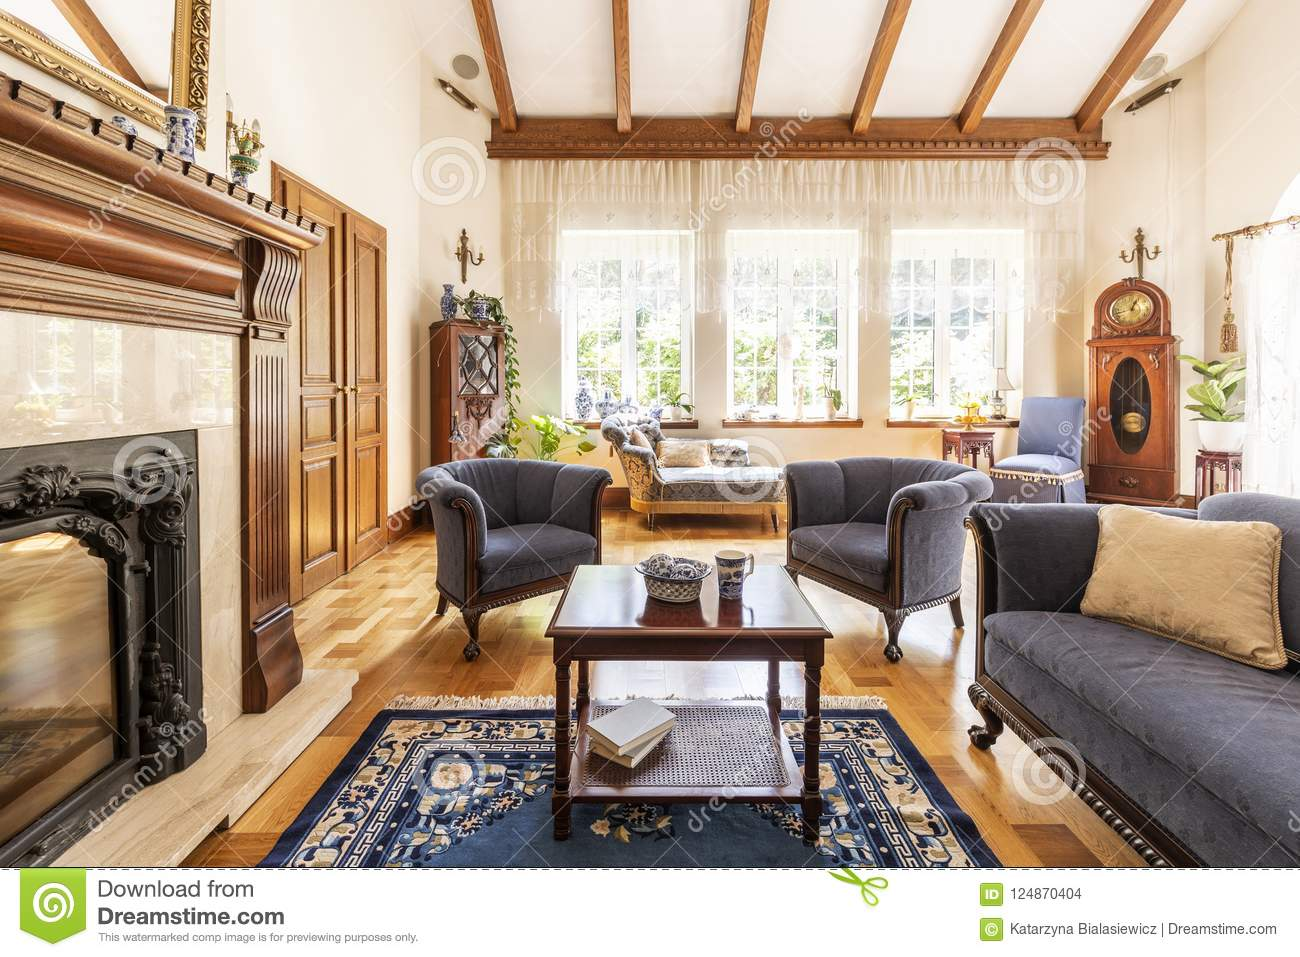 Dark wooden table on carpet between blue armchairs and sofa in luxury interior with fireplace. Real photo